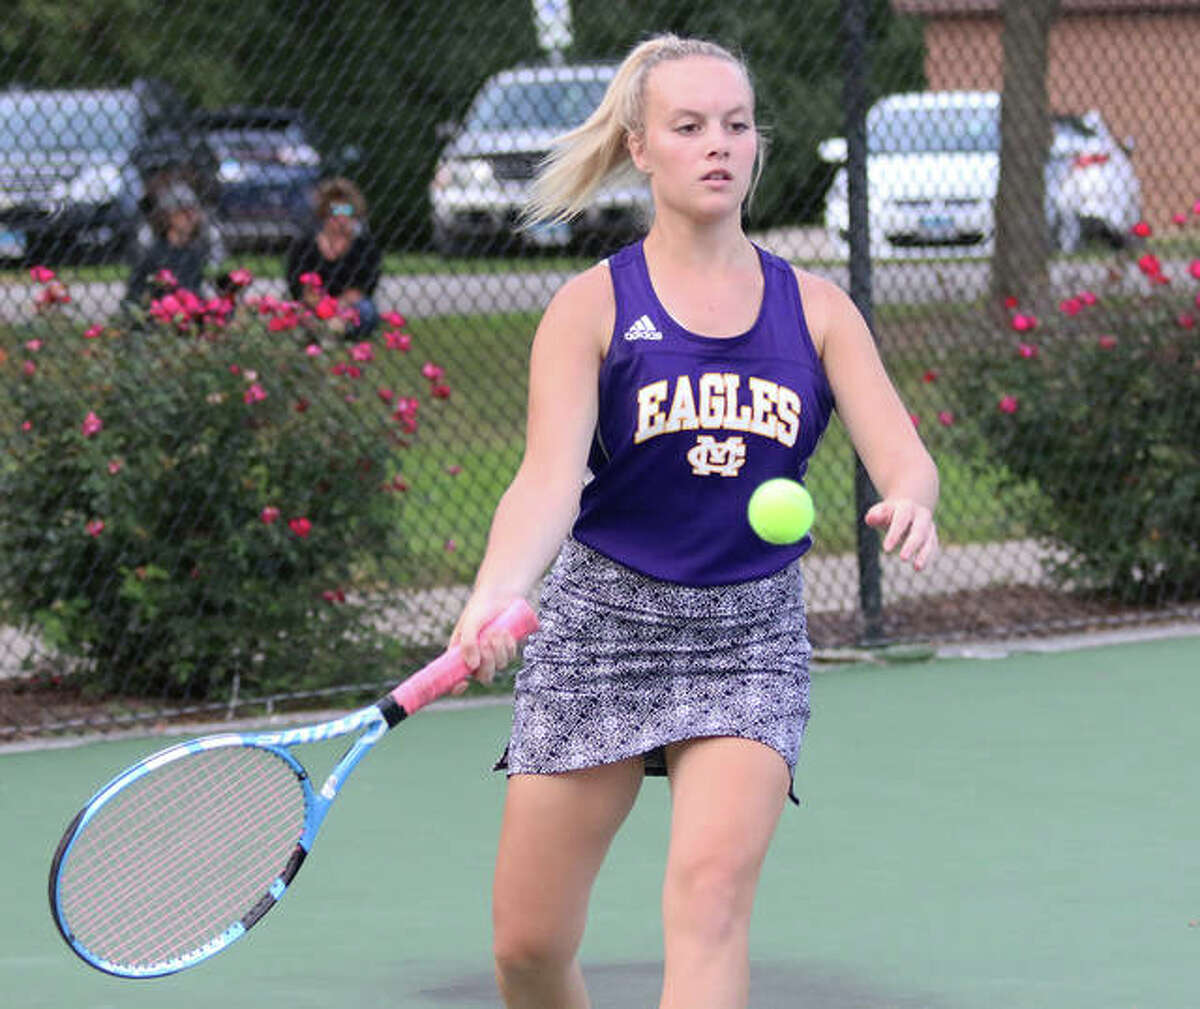 CM's Kennedy Loewen hits a return Wednesday in a No. 1 doubles match with Jersey at Simpson Tennis Center in Alton.